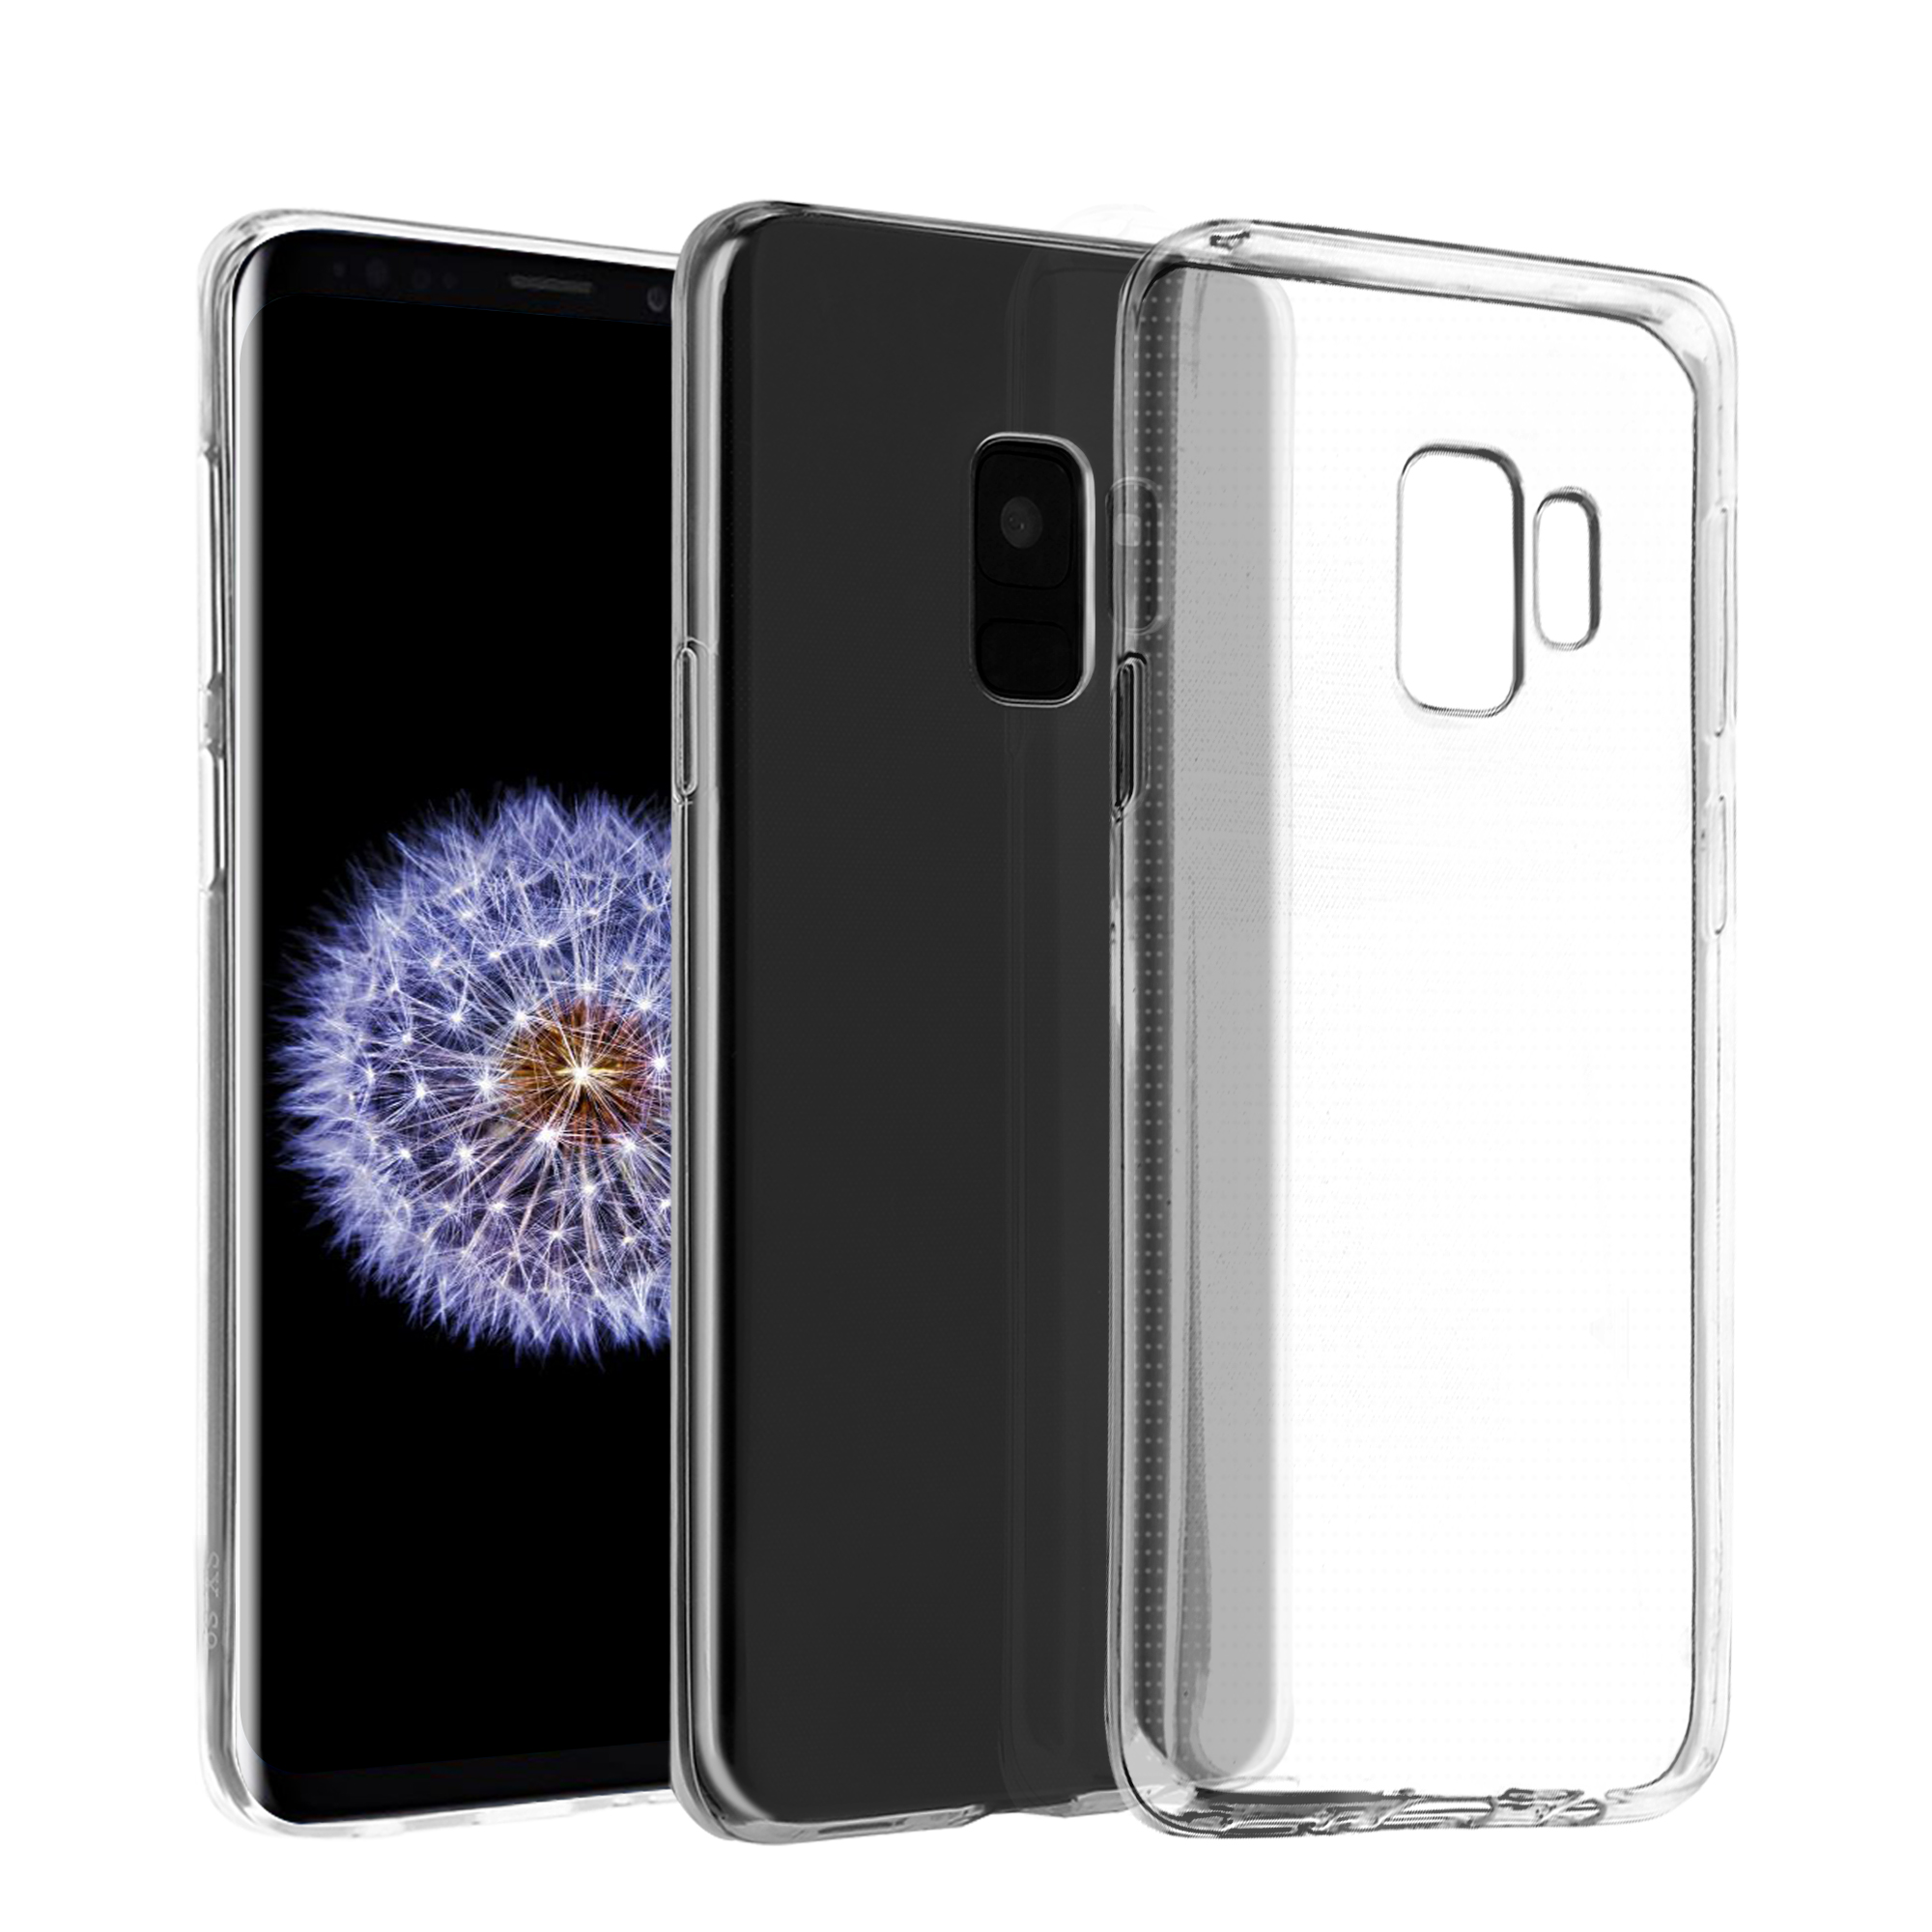 Galaxy S9 Case, Ultra Slim Silicone Protector Cover, Clear